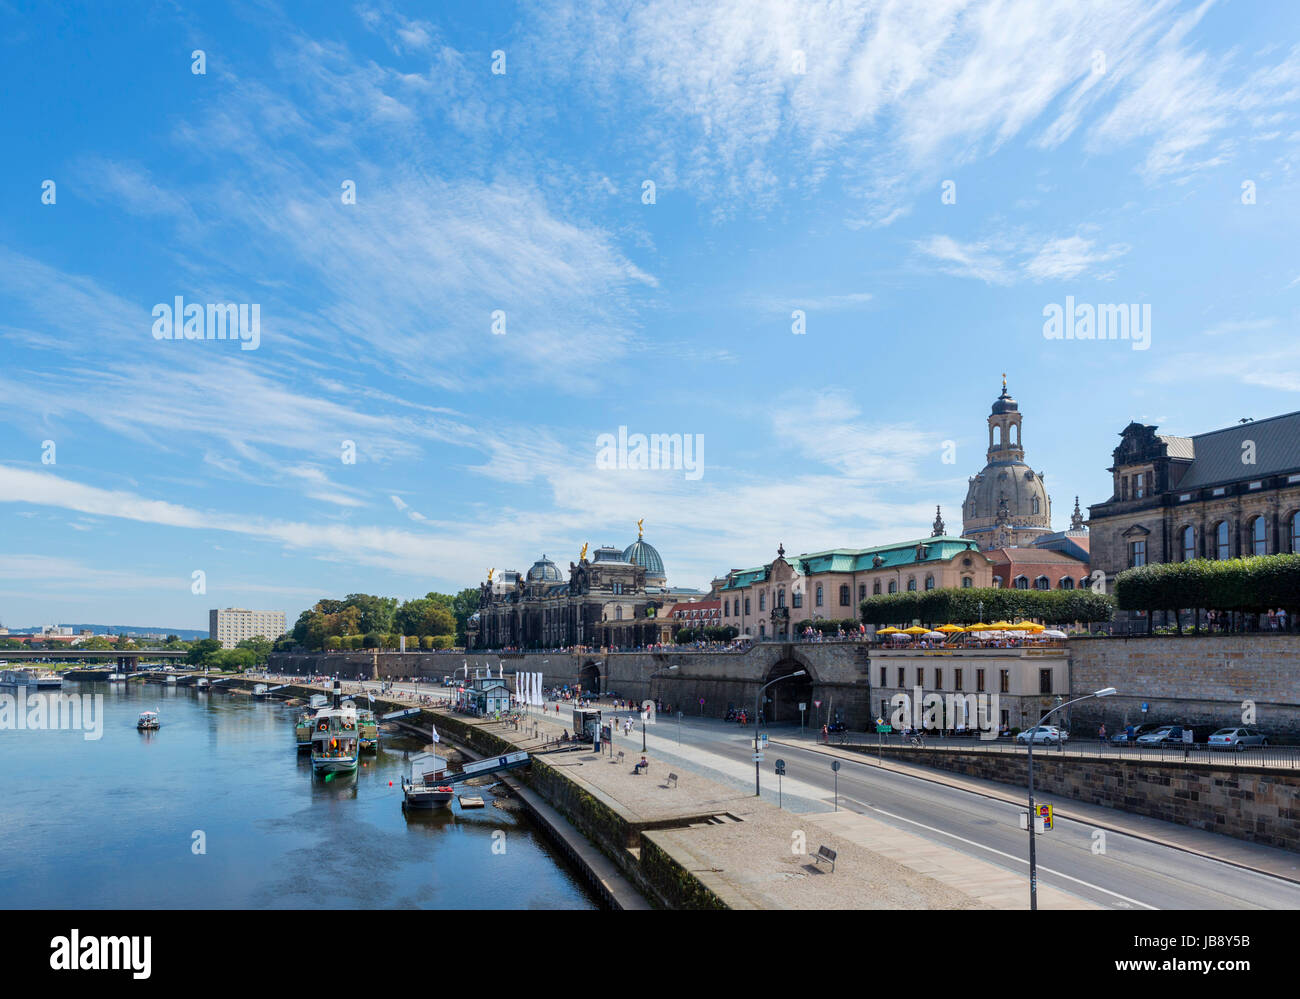 The River Elbe looking towards the Brühlsche Terrasse, Dresden, Saxony, Germany - Stock Image